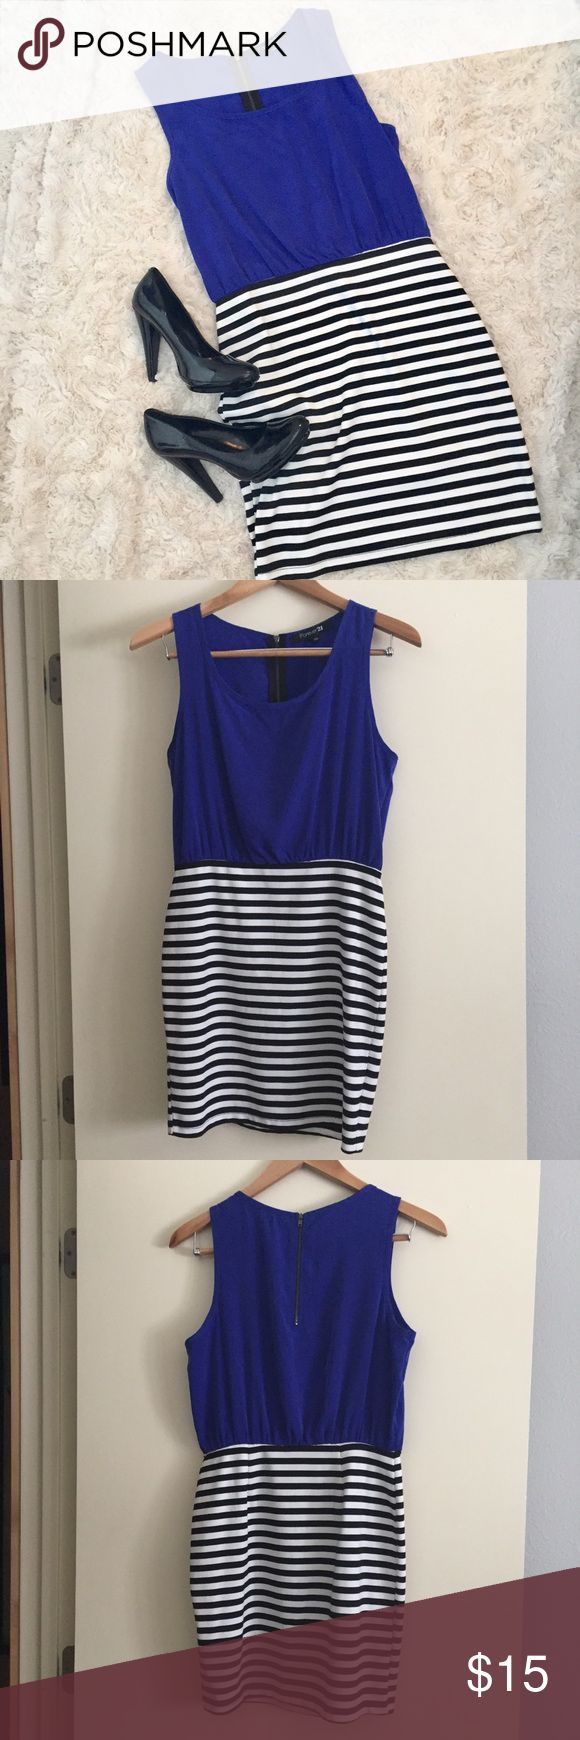 💋Forever 21 Blue Striped Bodycon Dress, Size M 💋Forever 21 Blue Striped Bodycon Dress, Size Medium.  Top is a royal blue chiffon, bottom is a black and white jersey knit.  Super cute dress, perfect for a night out! Dress is in excellent condition, no flaws!  (Black pumps also available in my closet 😊) Forever 21 Dresses Mini